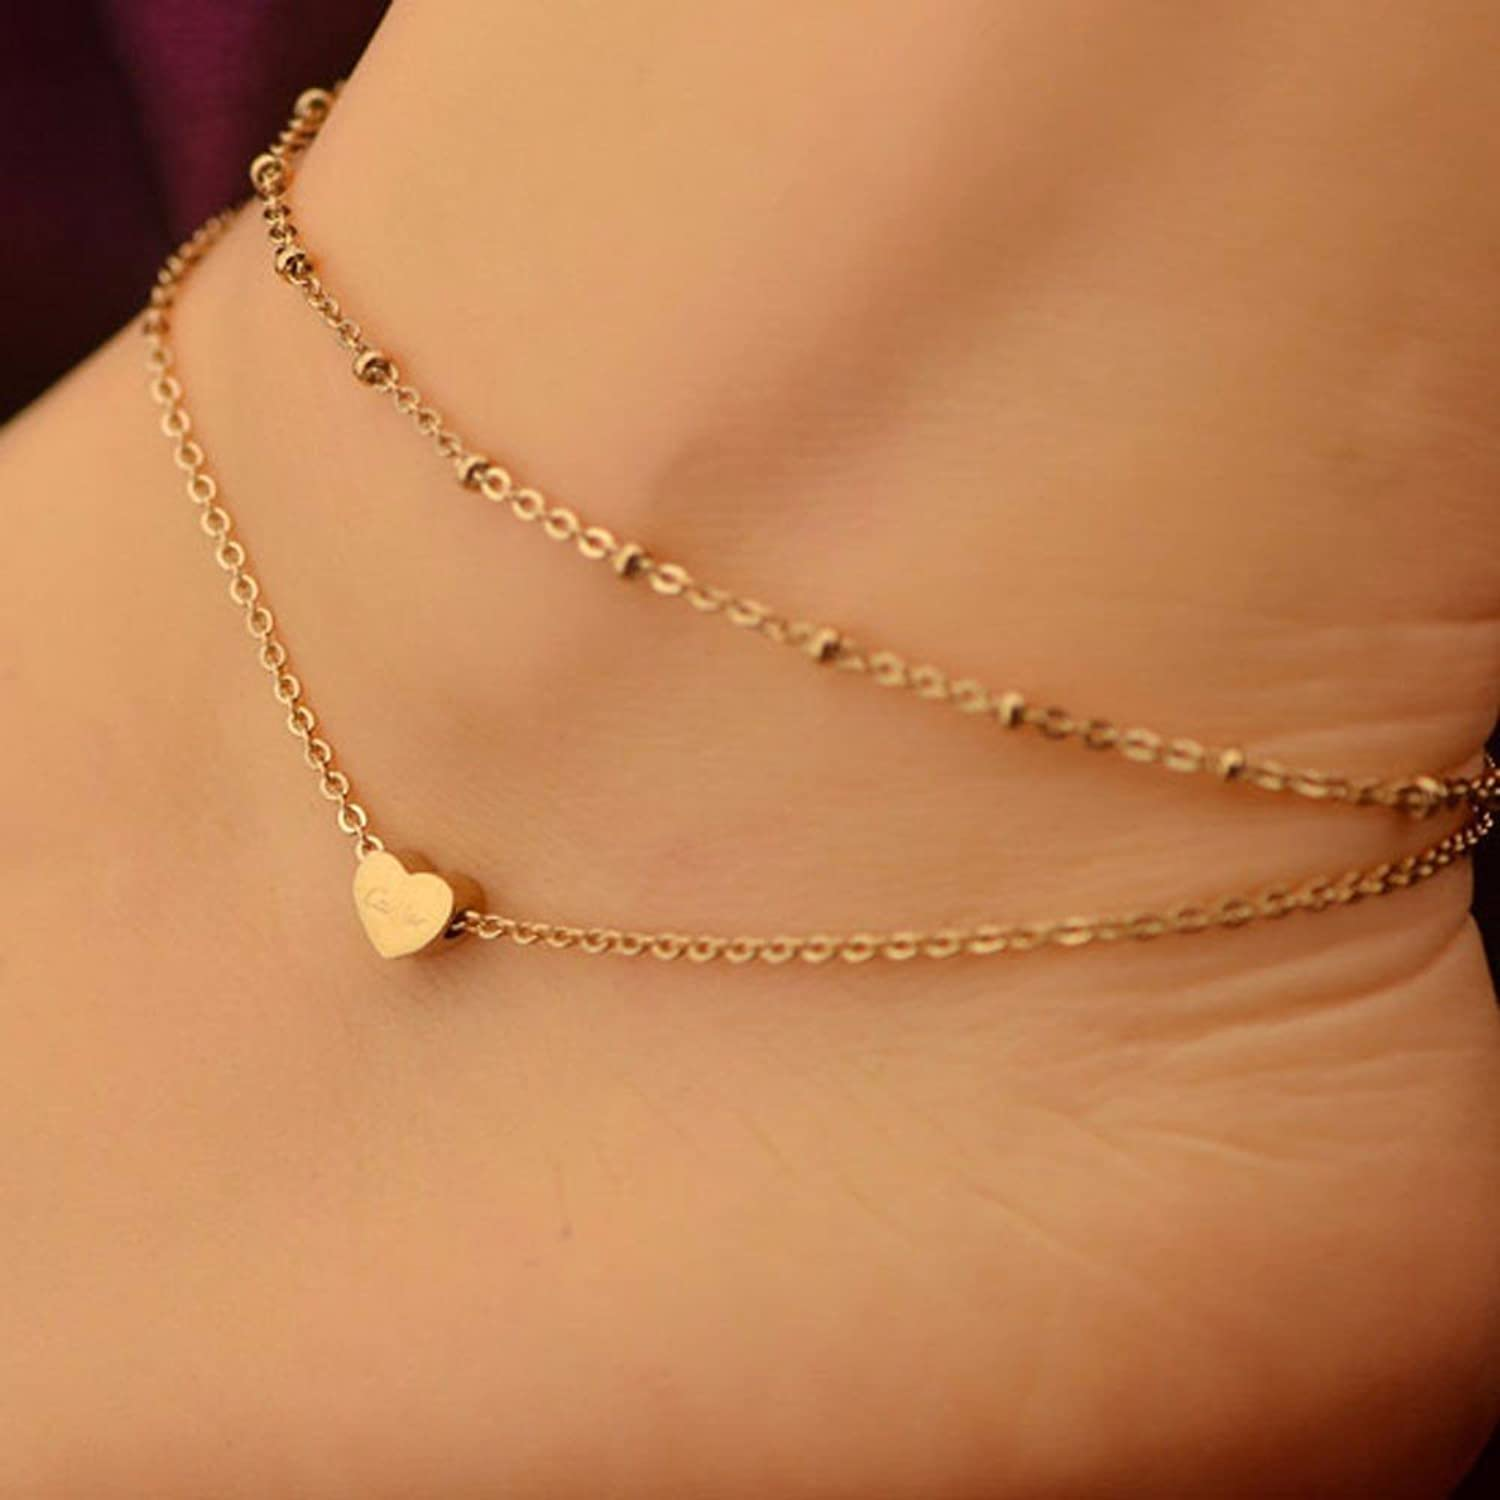 rolo chain tri grams dolphin bracelet anklet charms with itm gold color